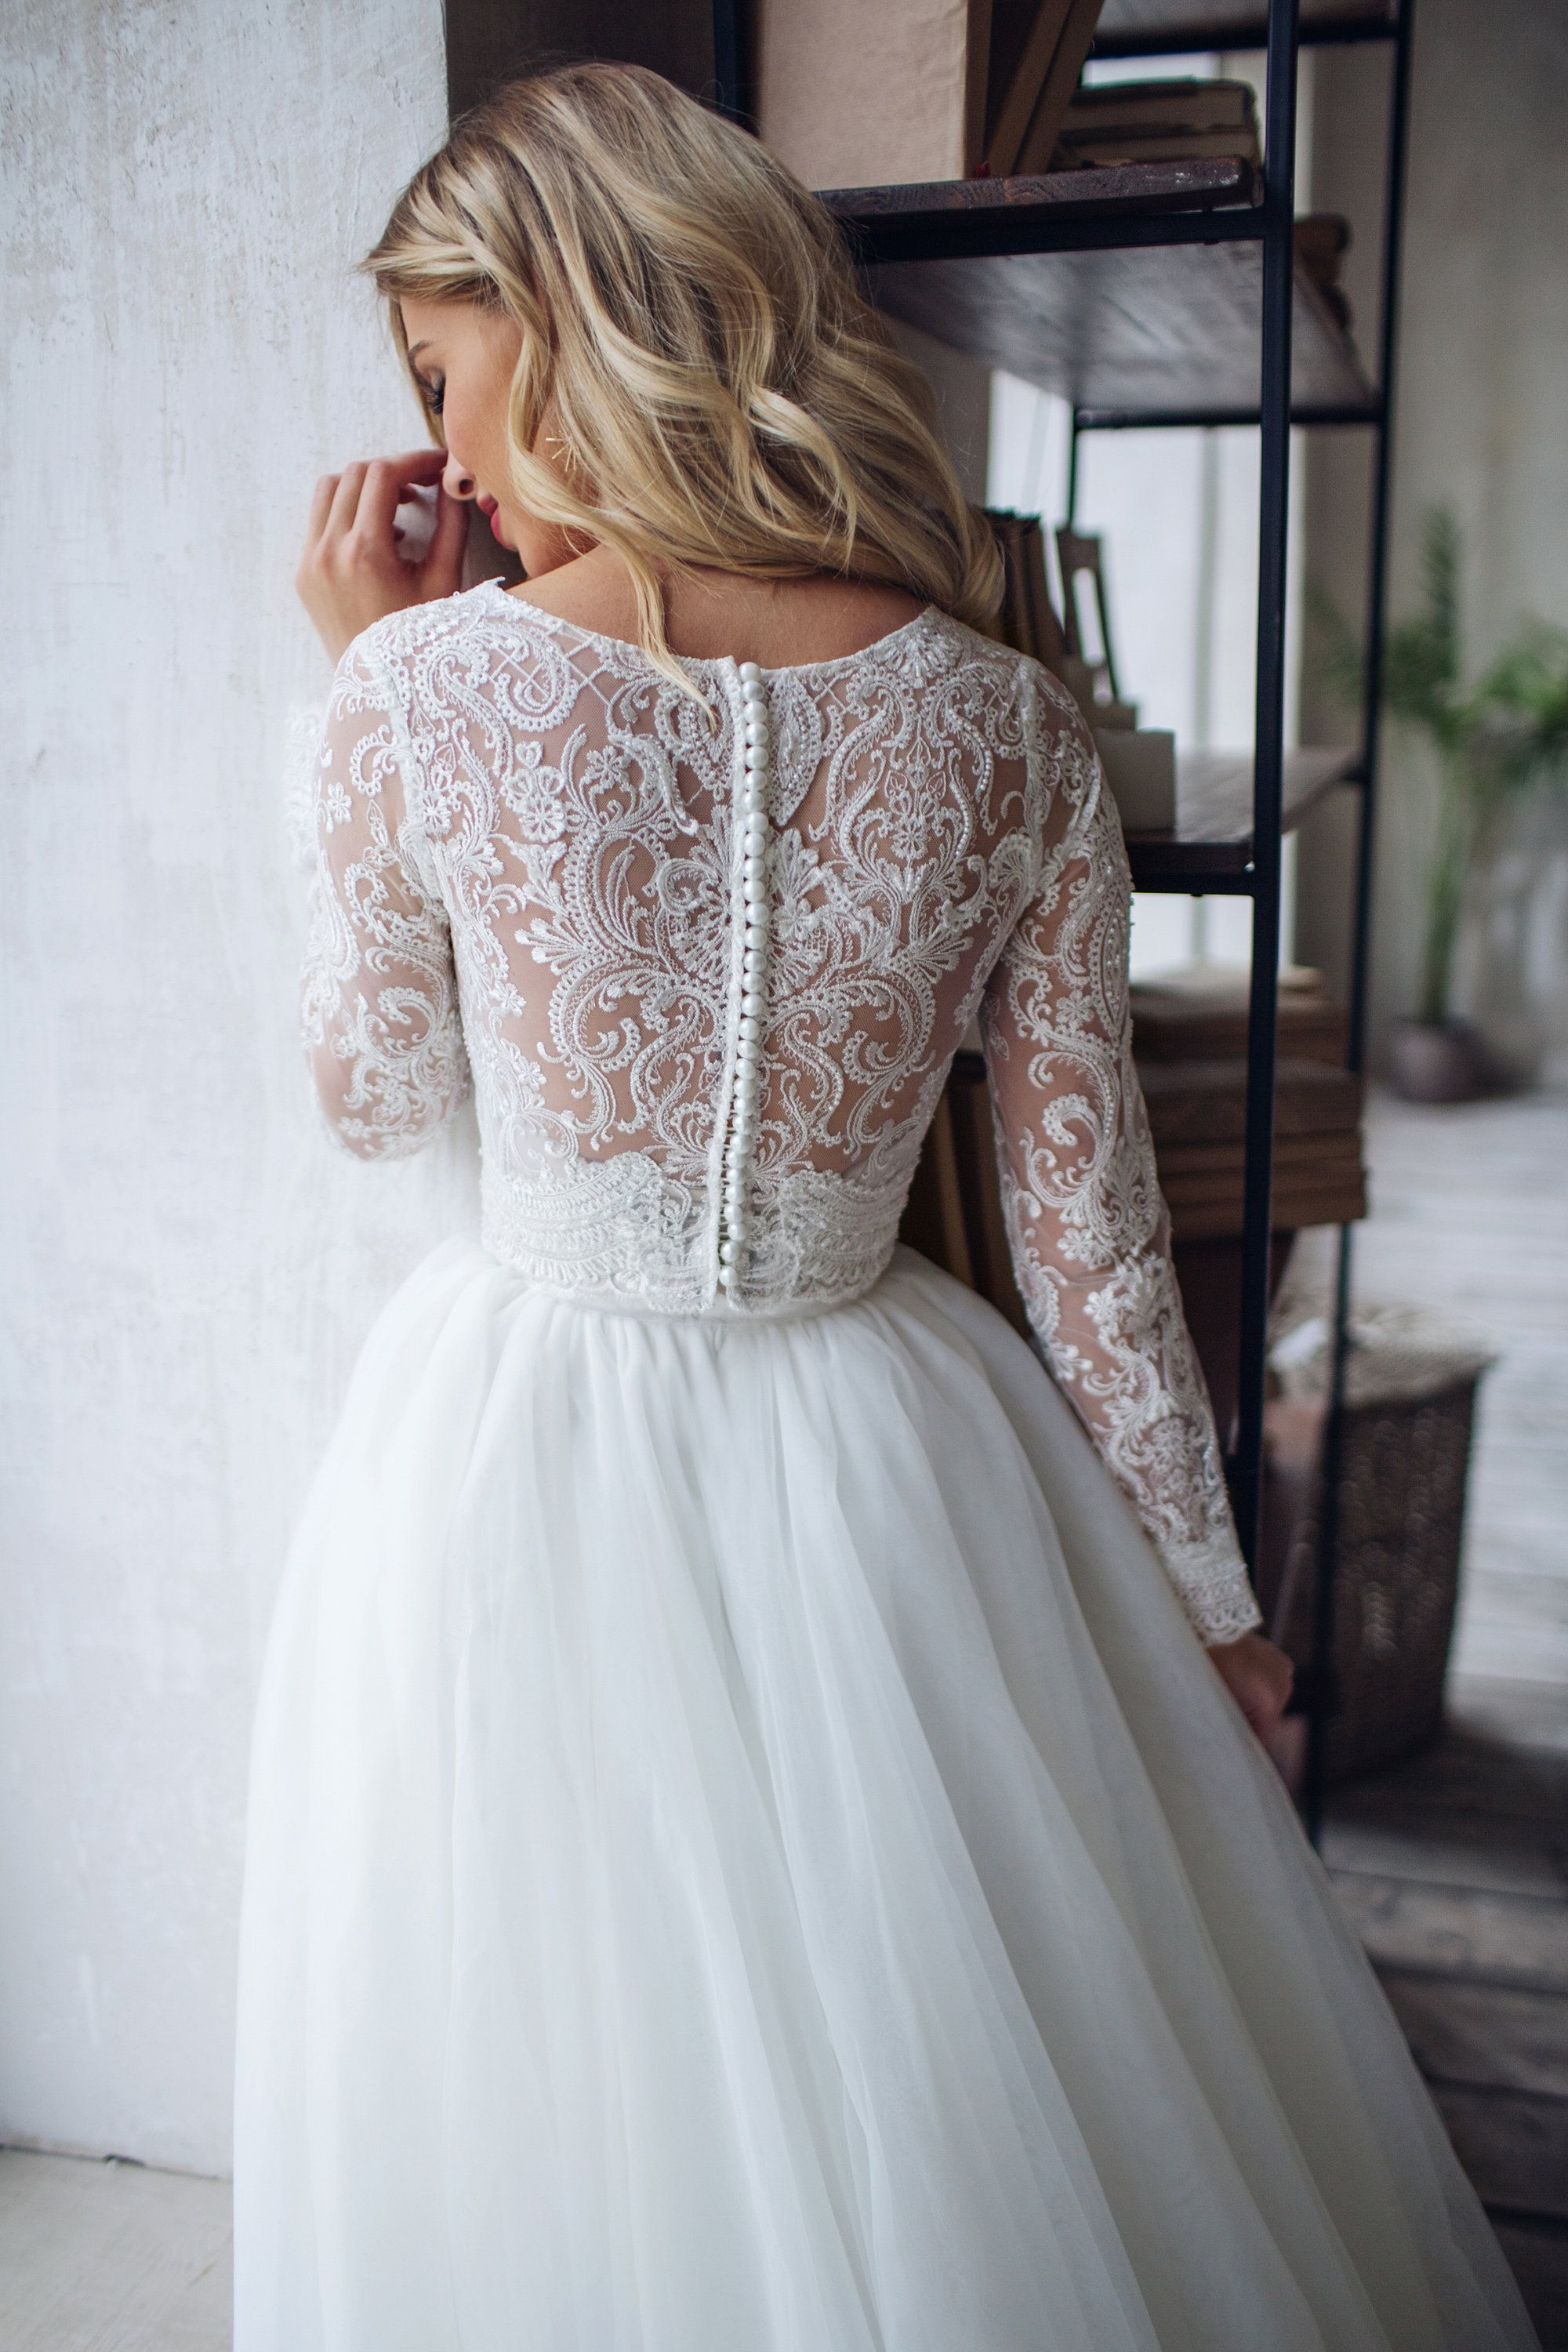 Tulle long sleeve dress LORELEI, bridal separates top and skirt